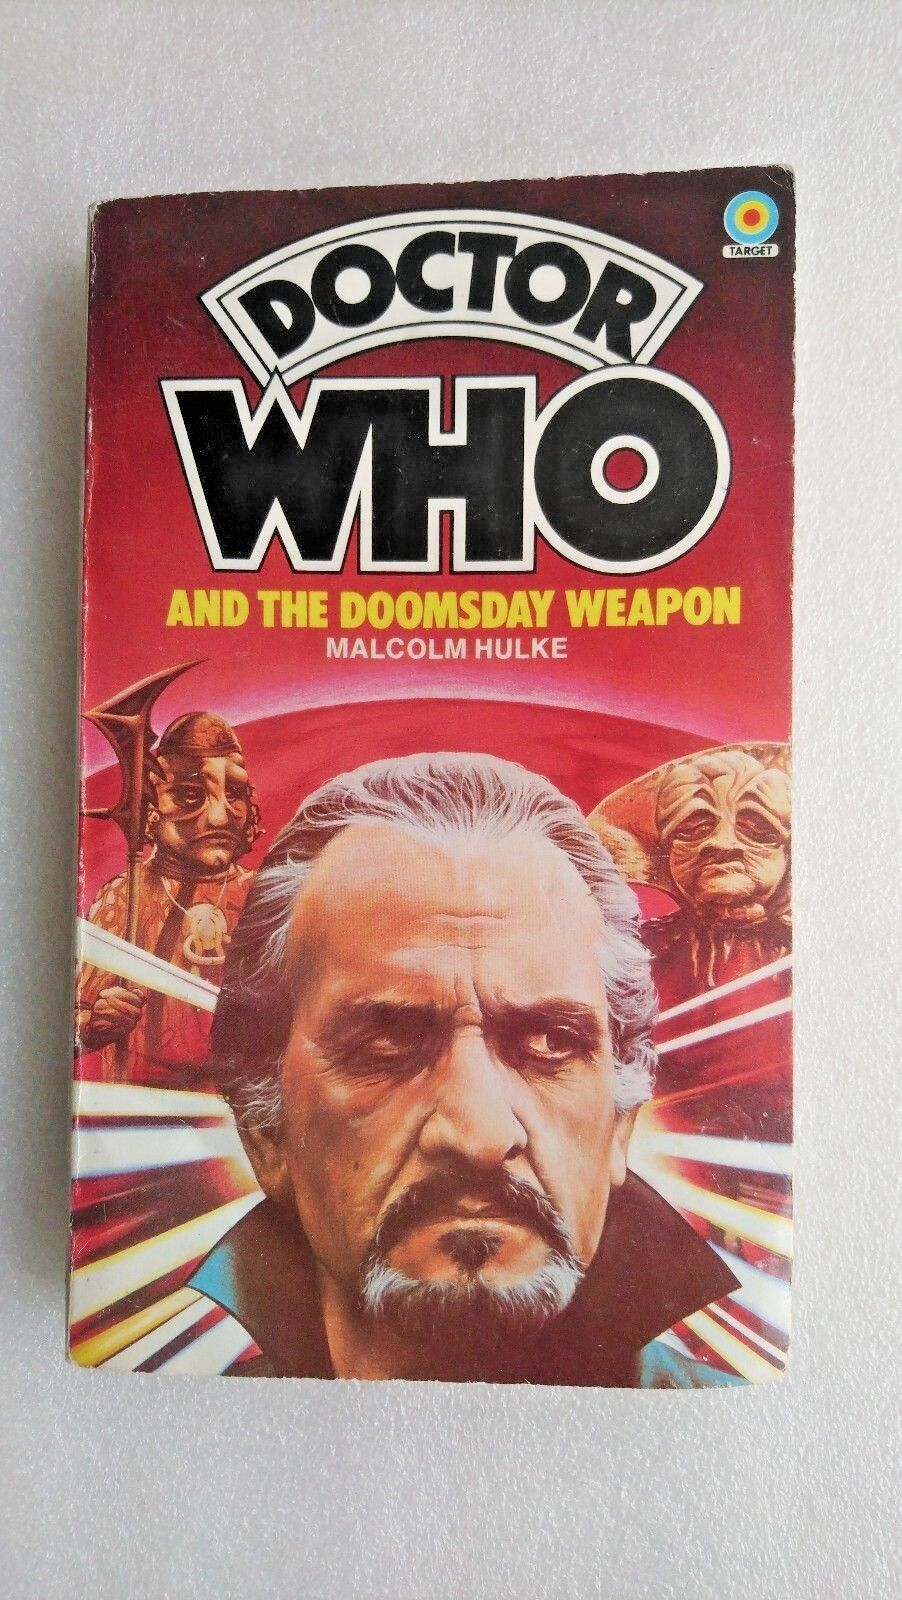 Doctor Who and the Doomsday Weapon by Malcolm Hulke (Paperback, 1983)